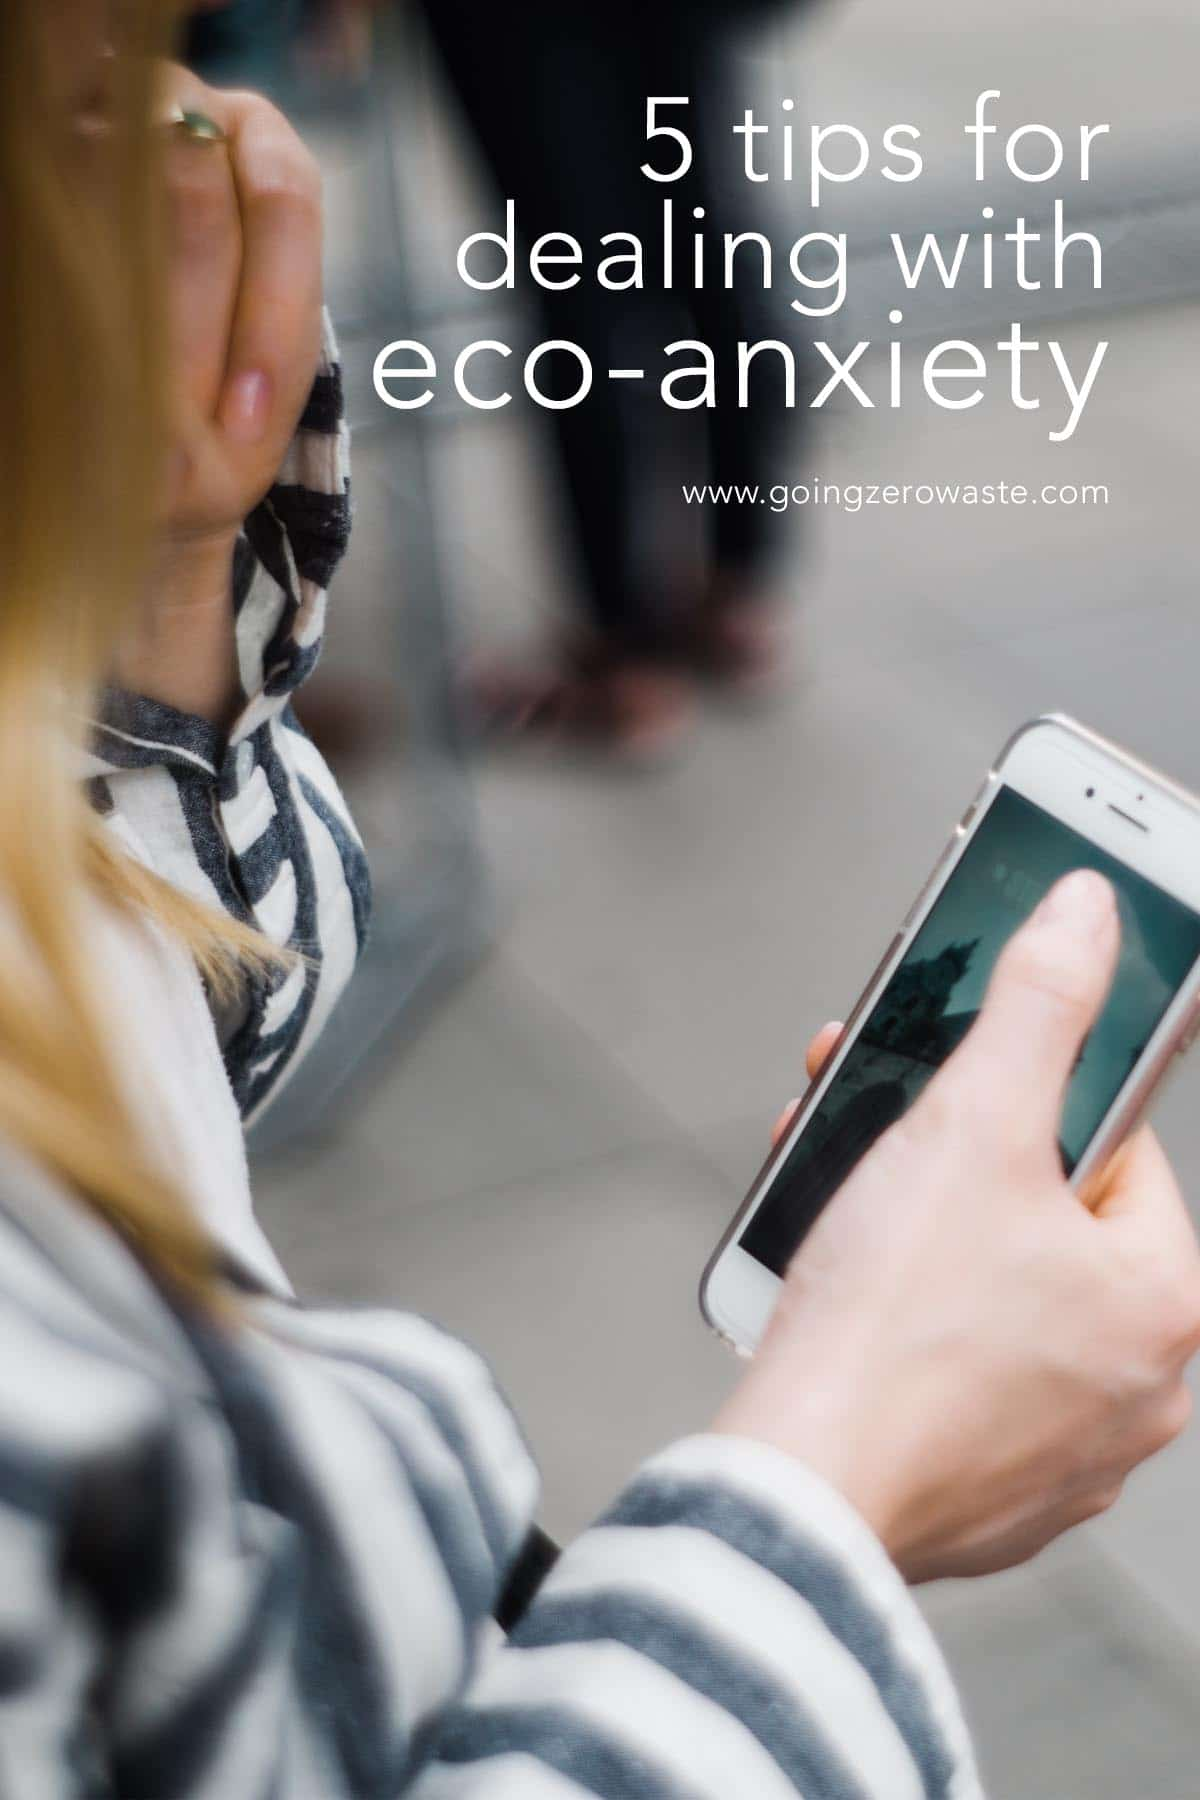 Tips for Dealing with Eco-Anxiety